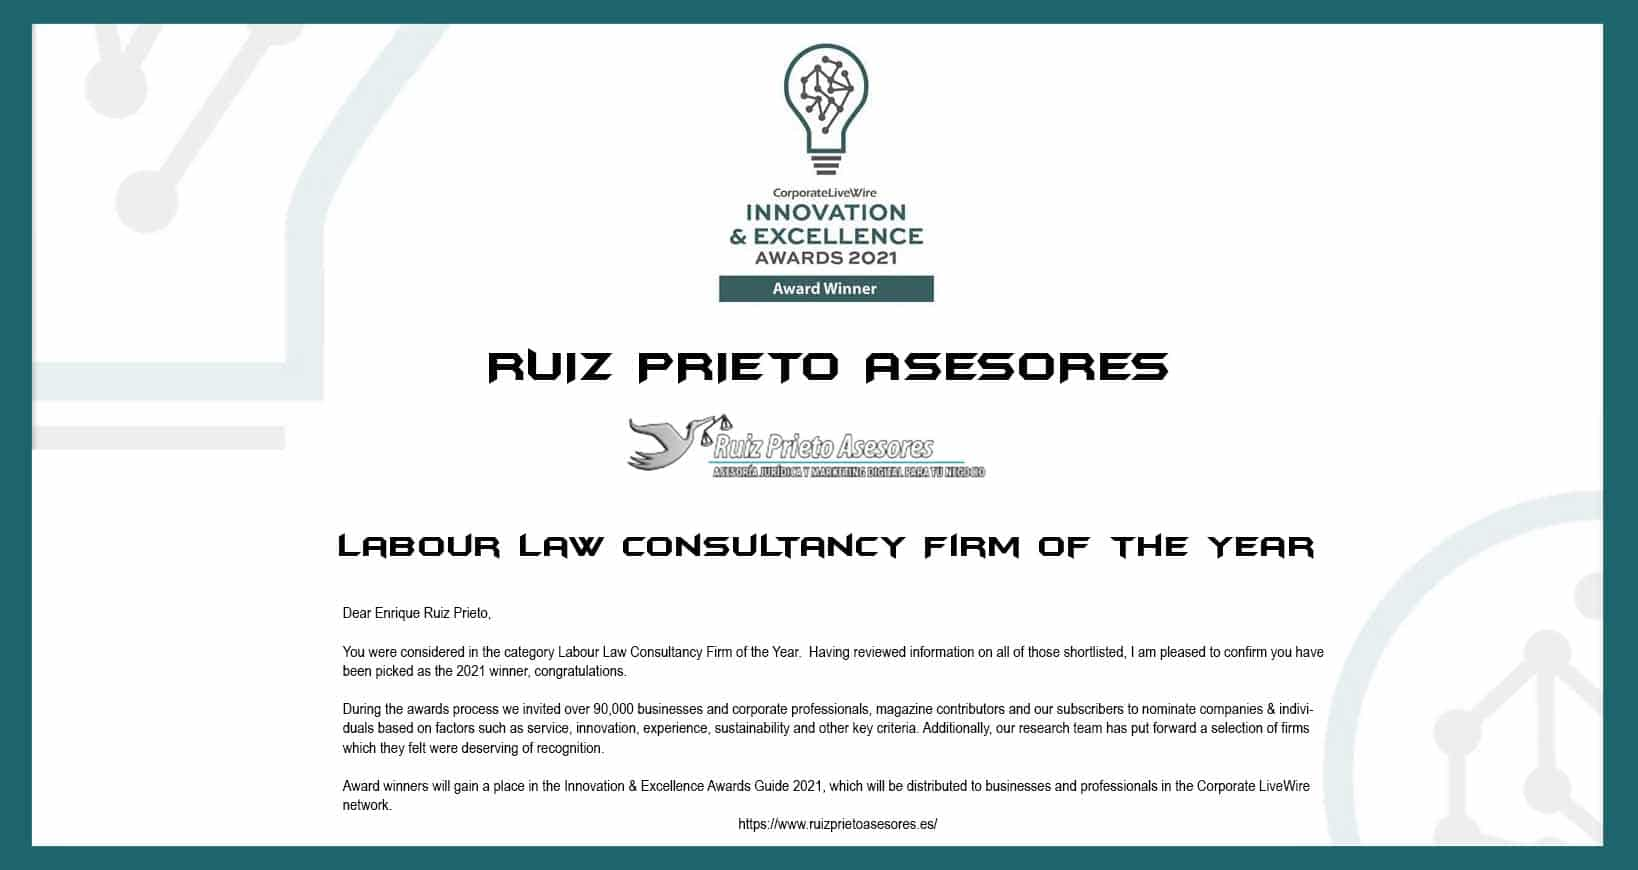 Corporate LiveWire Innovation & Excellence Awards 2021 in the category Labour Law Consultancy Firm of the Year